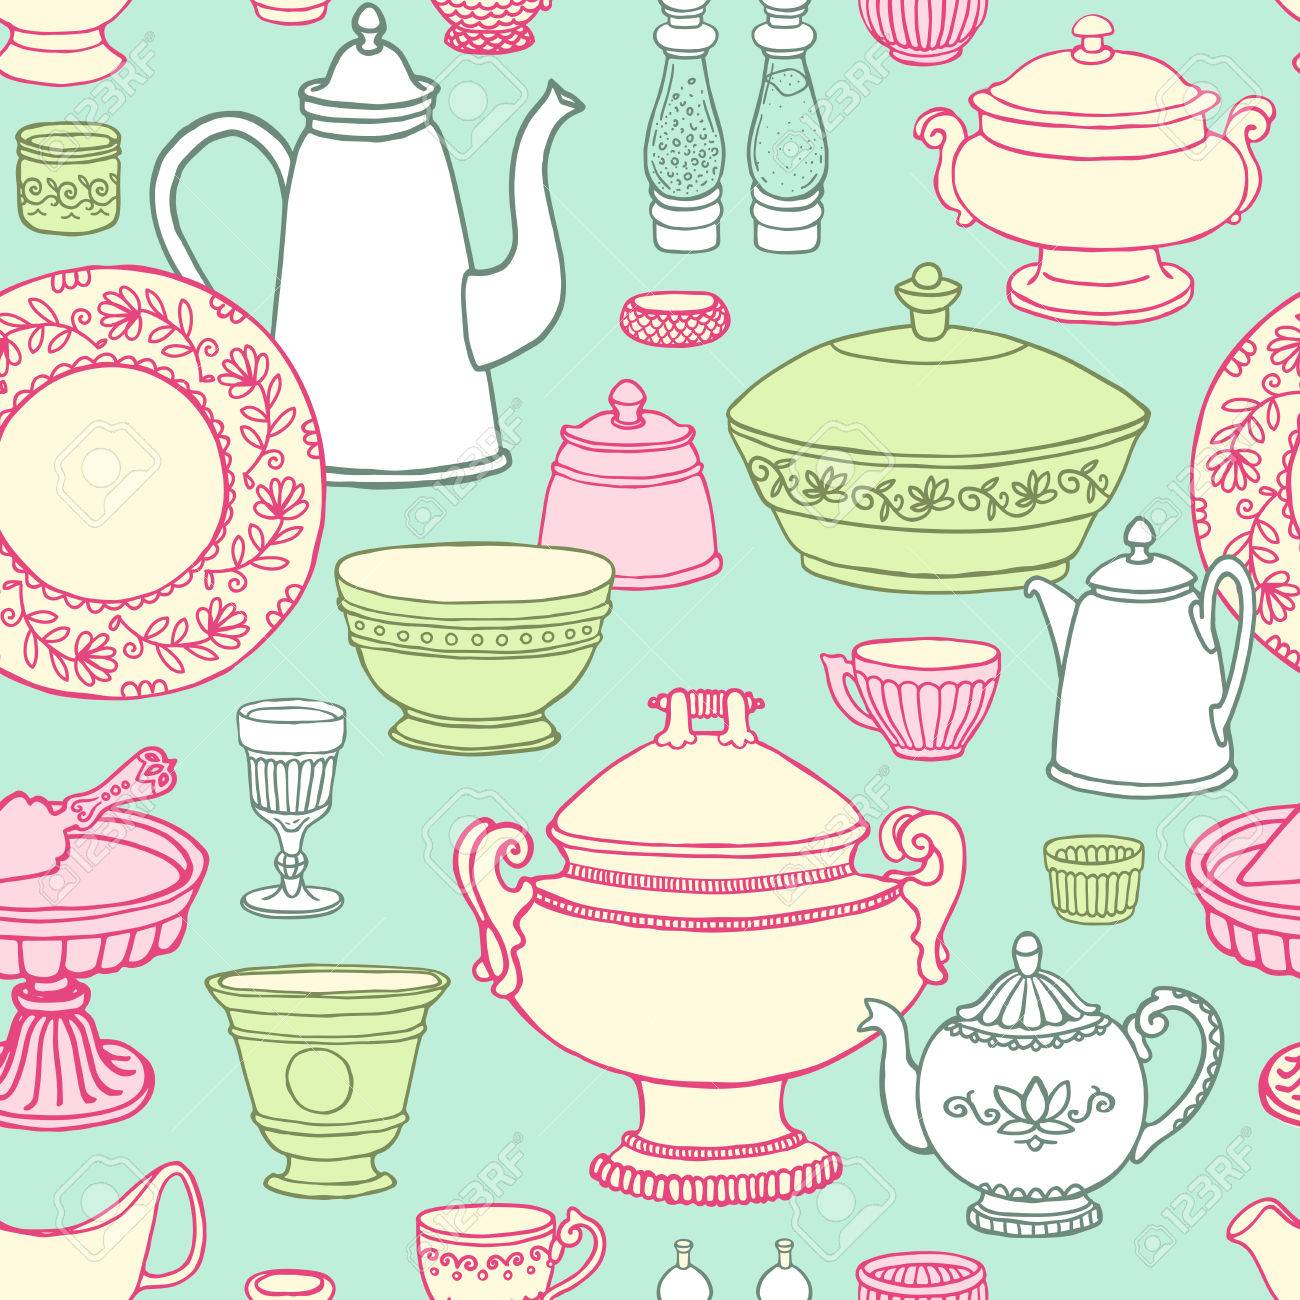 Shabby Chic Kitchen Vector Seamless Pattern With Cooking Items Hand Drawn Food And Drink In